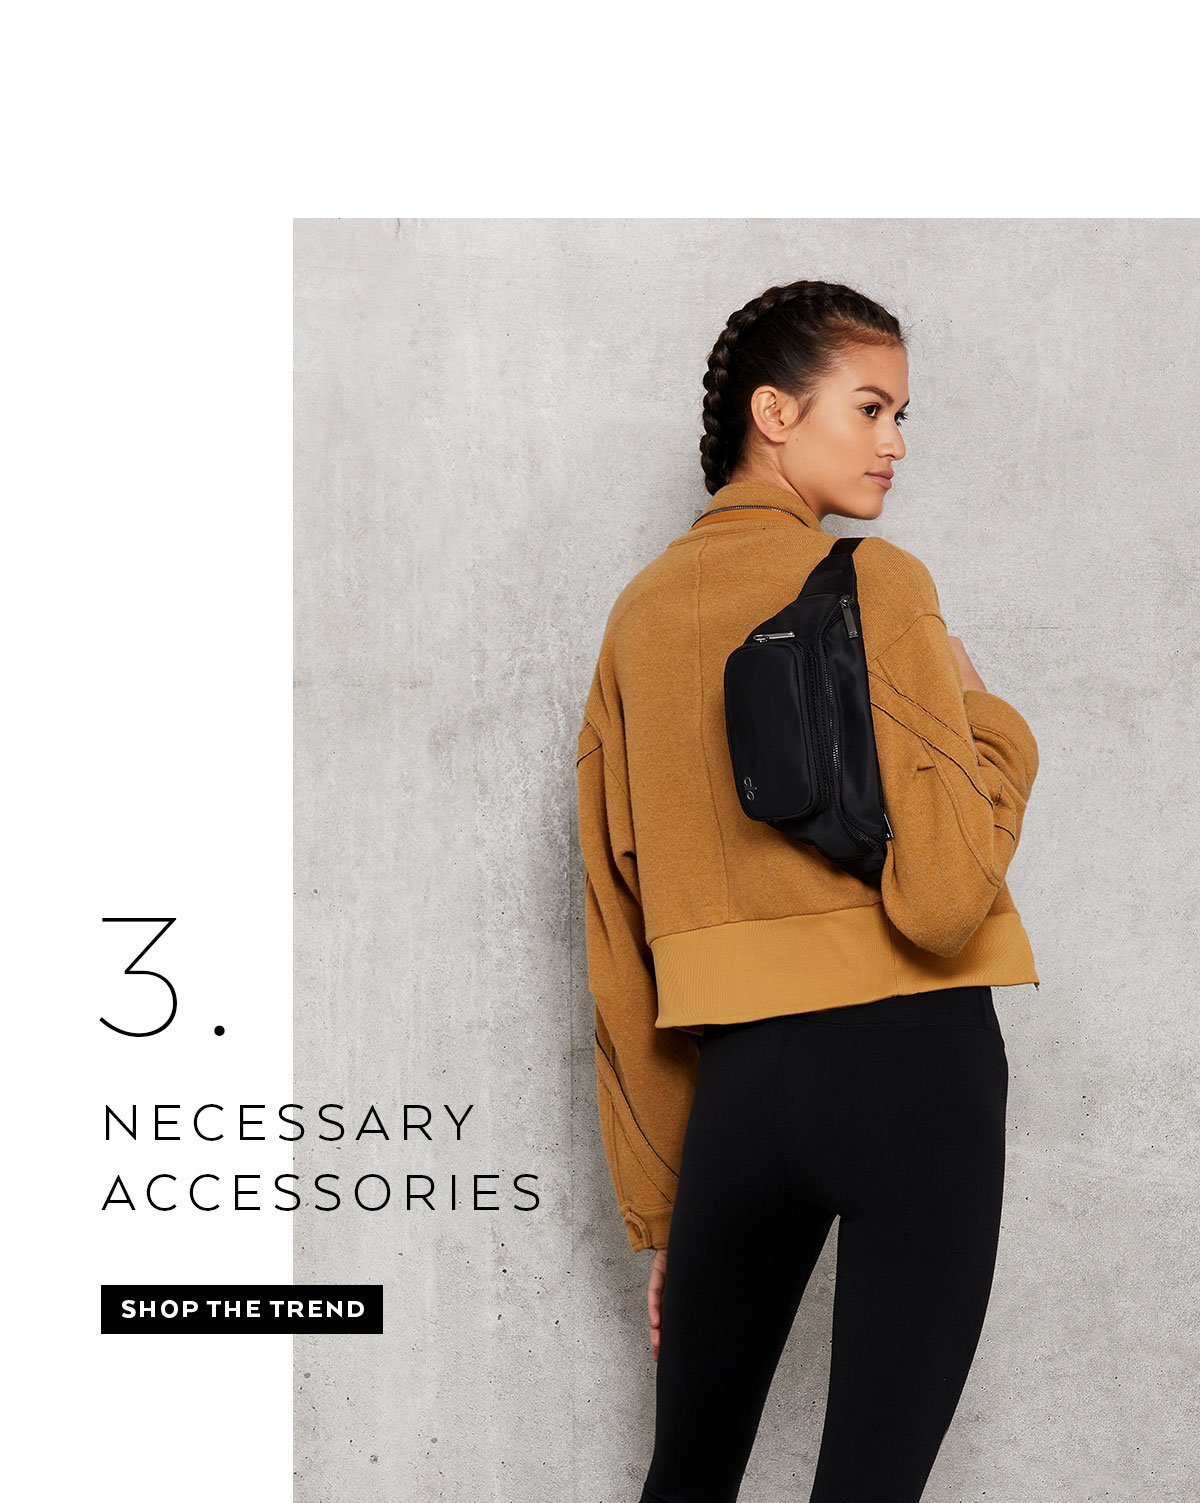 NECESSARY ACCESSORIES - SHOP NOW